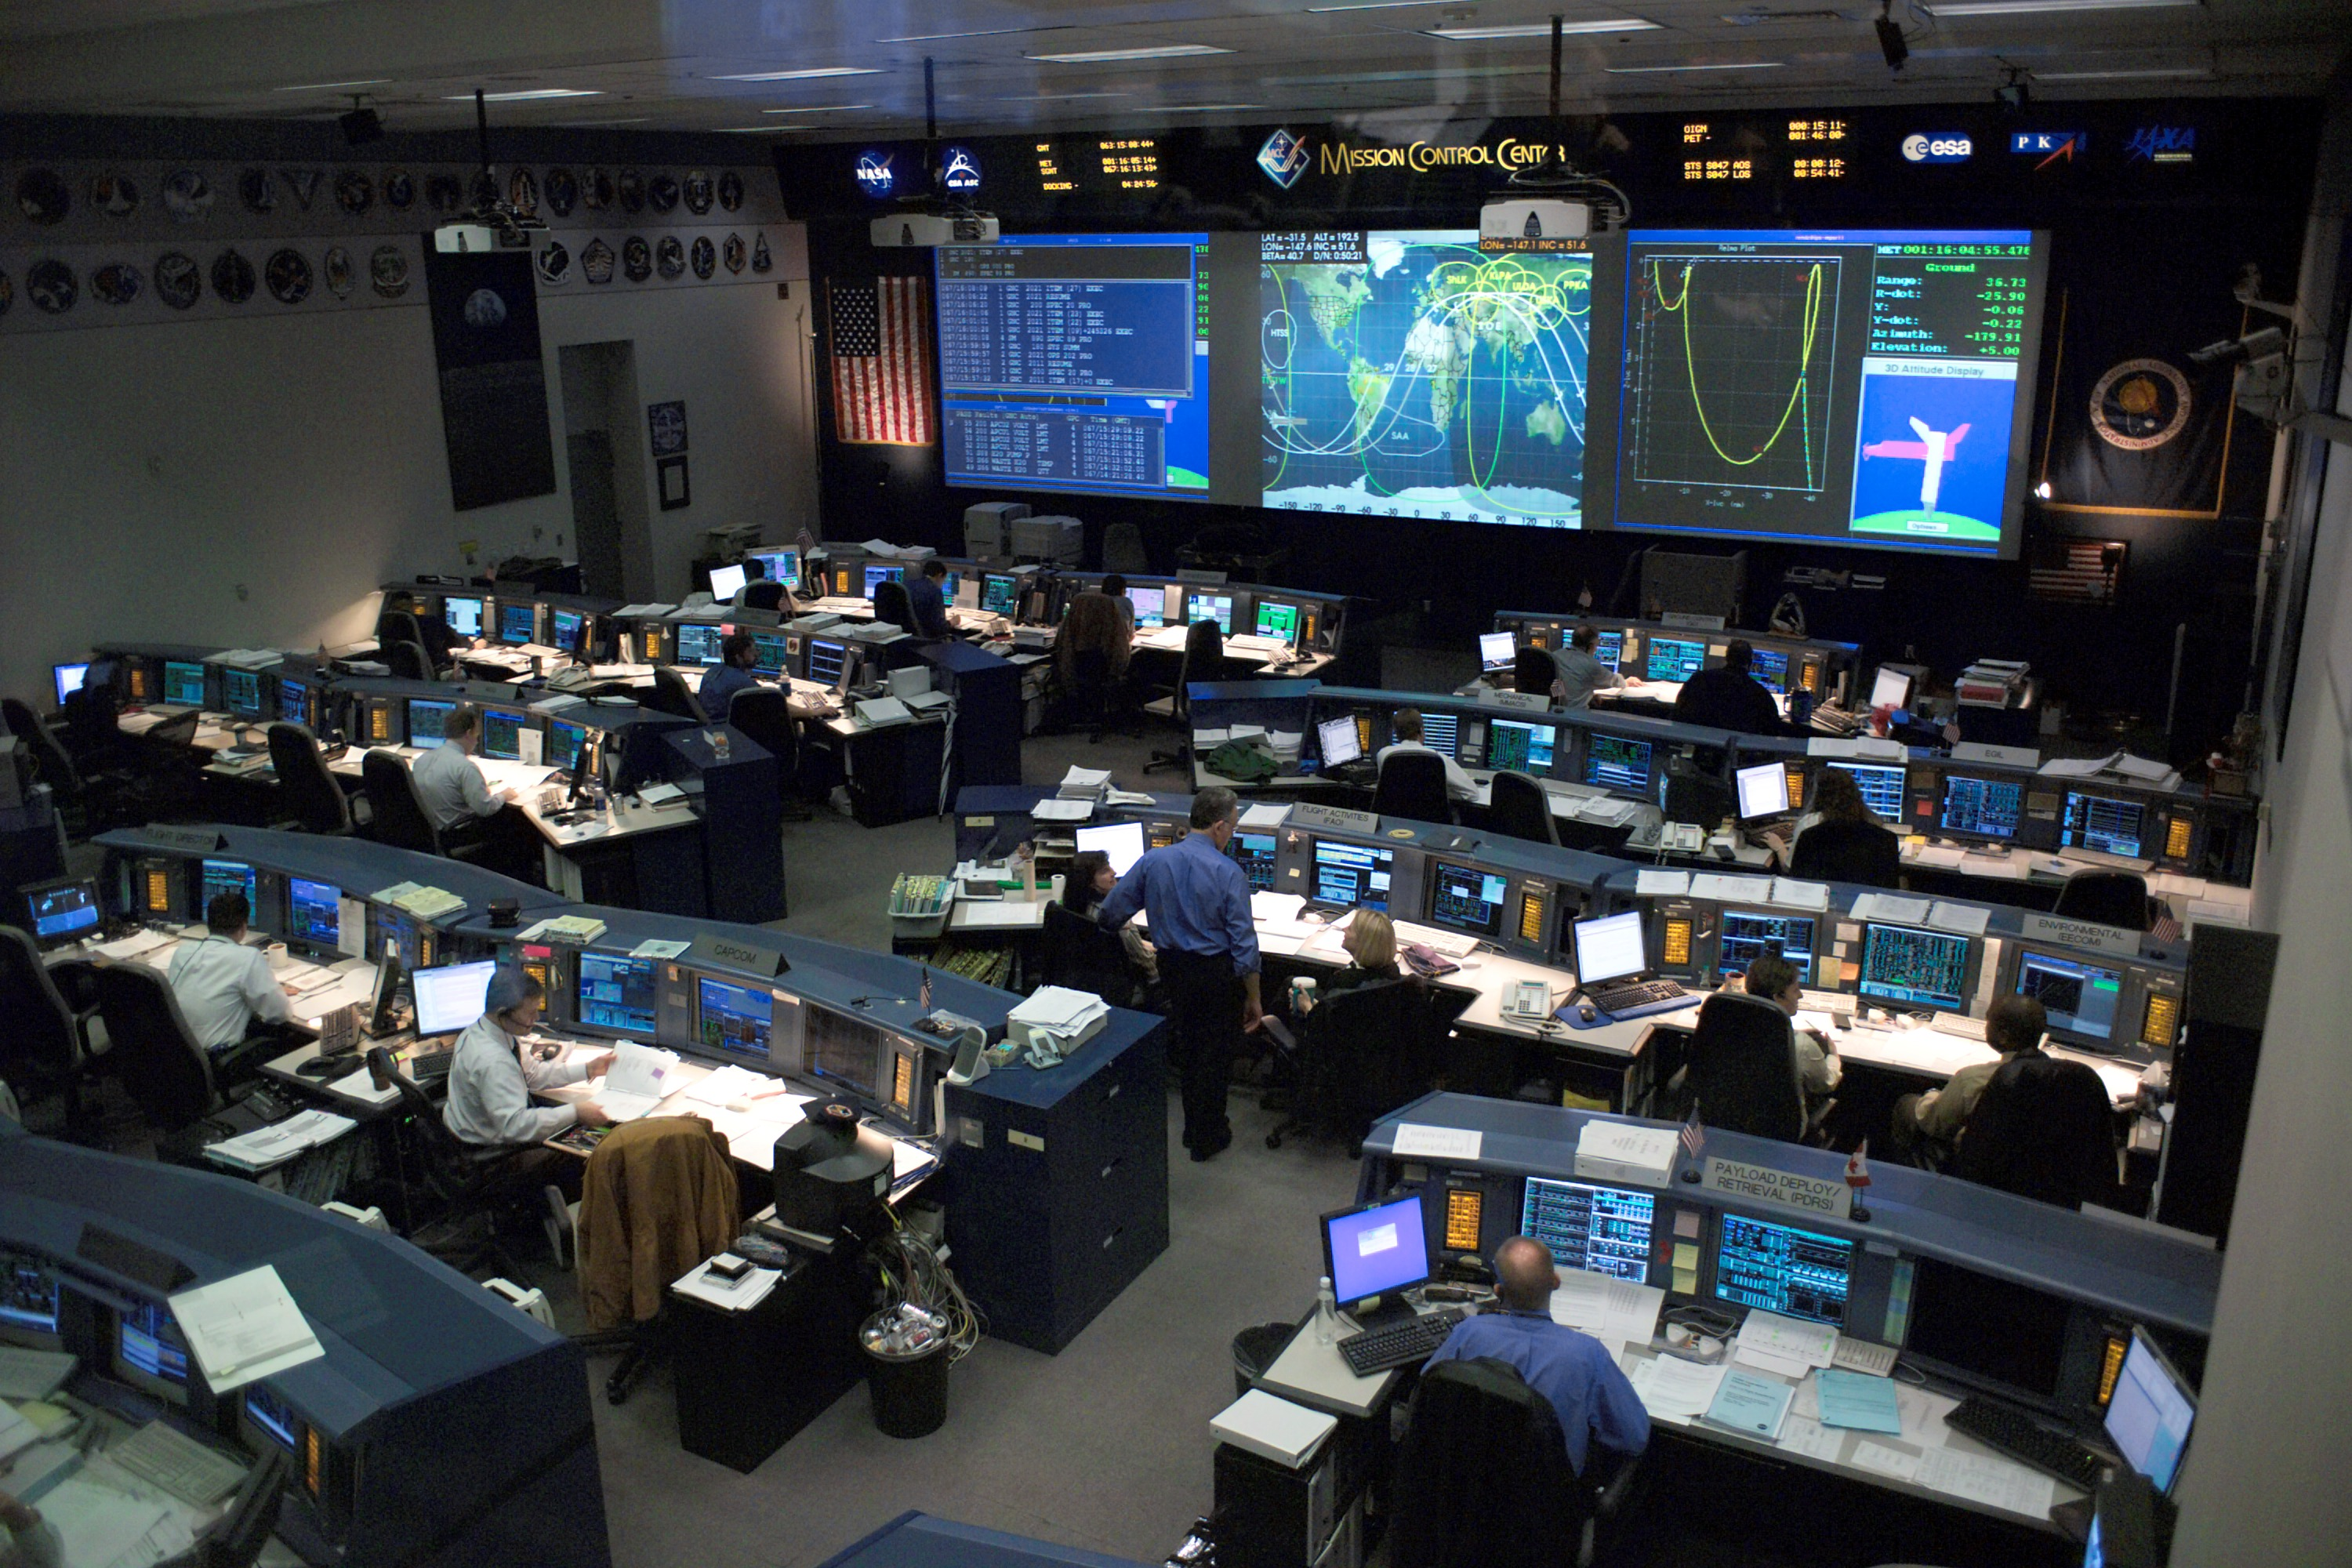 File:Mission control center.jpg - Wikimedia Commons